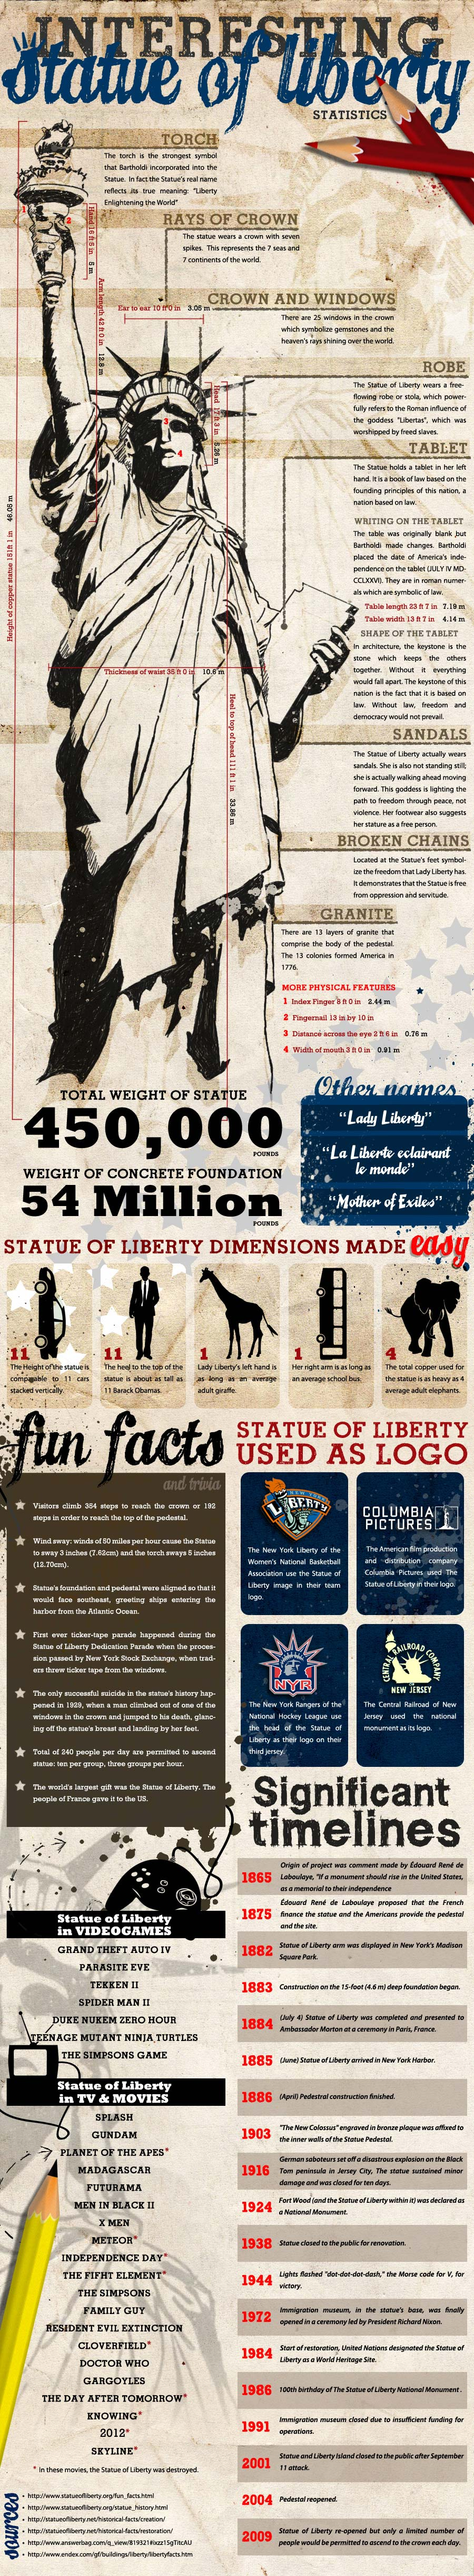 Interesting Statue of Liberty Statistics